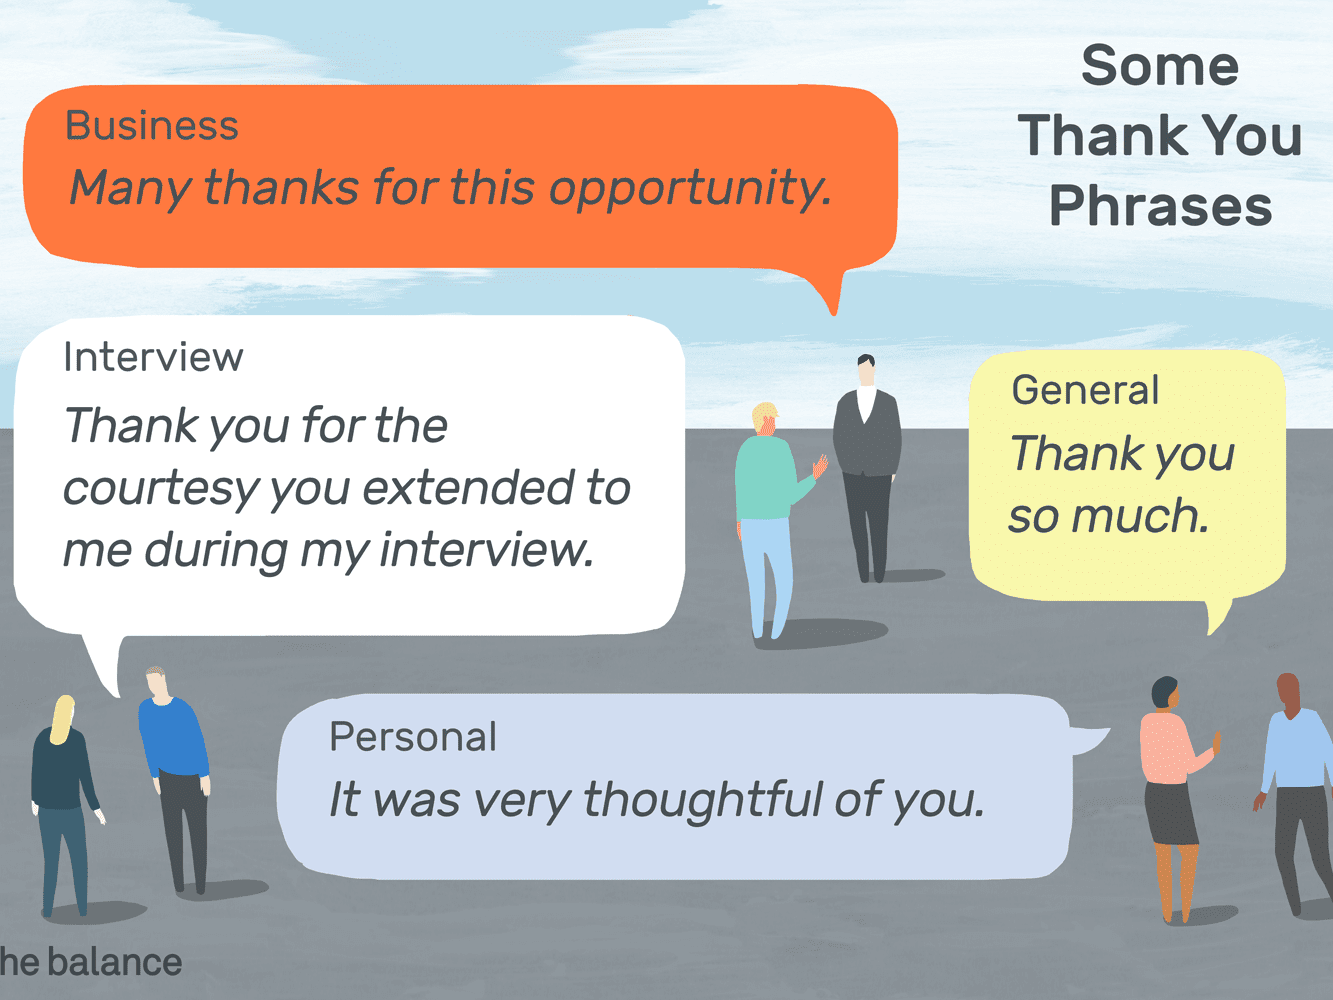 Thank-You Messages, Phrases, and Wording Examples